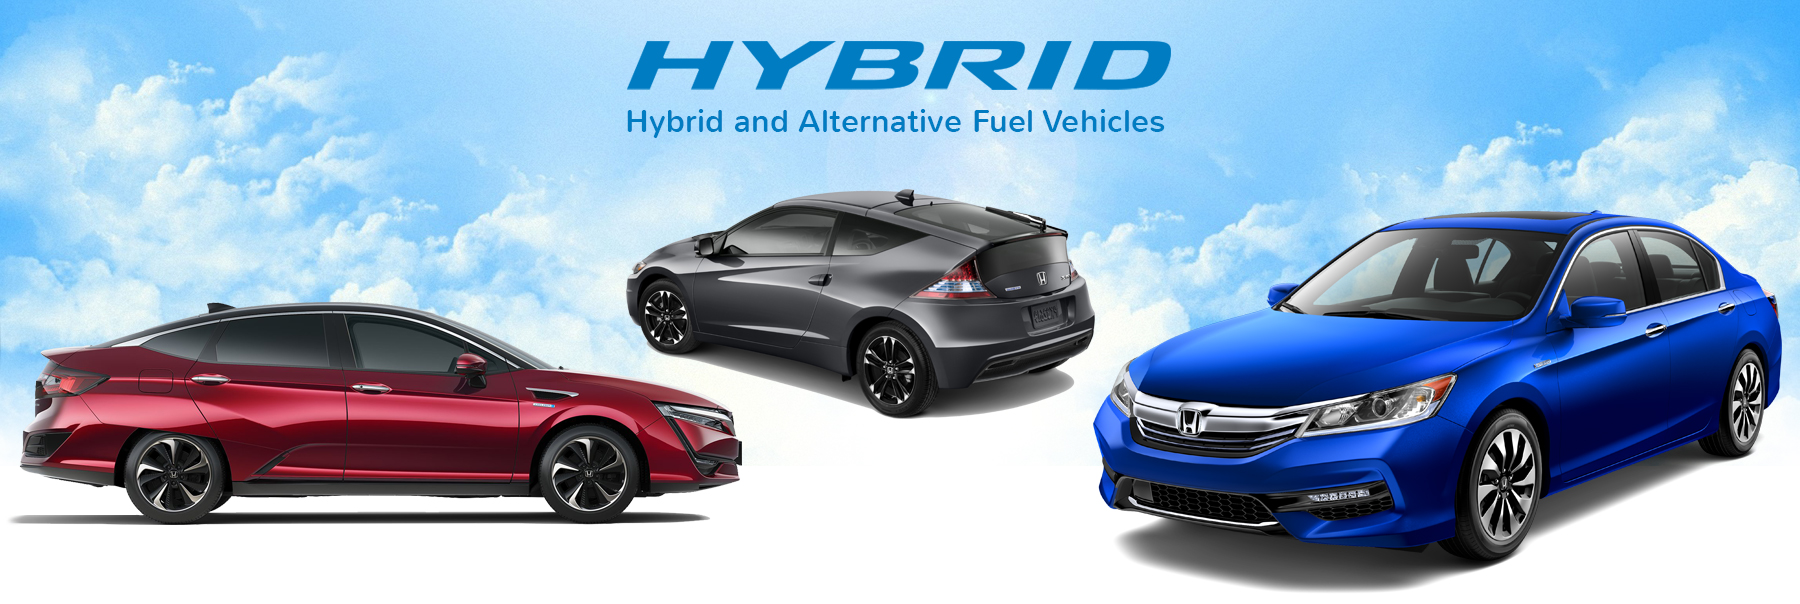 Hybrid cars and alternative fuel vehicles montana honda for Montana honda dealers